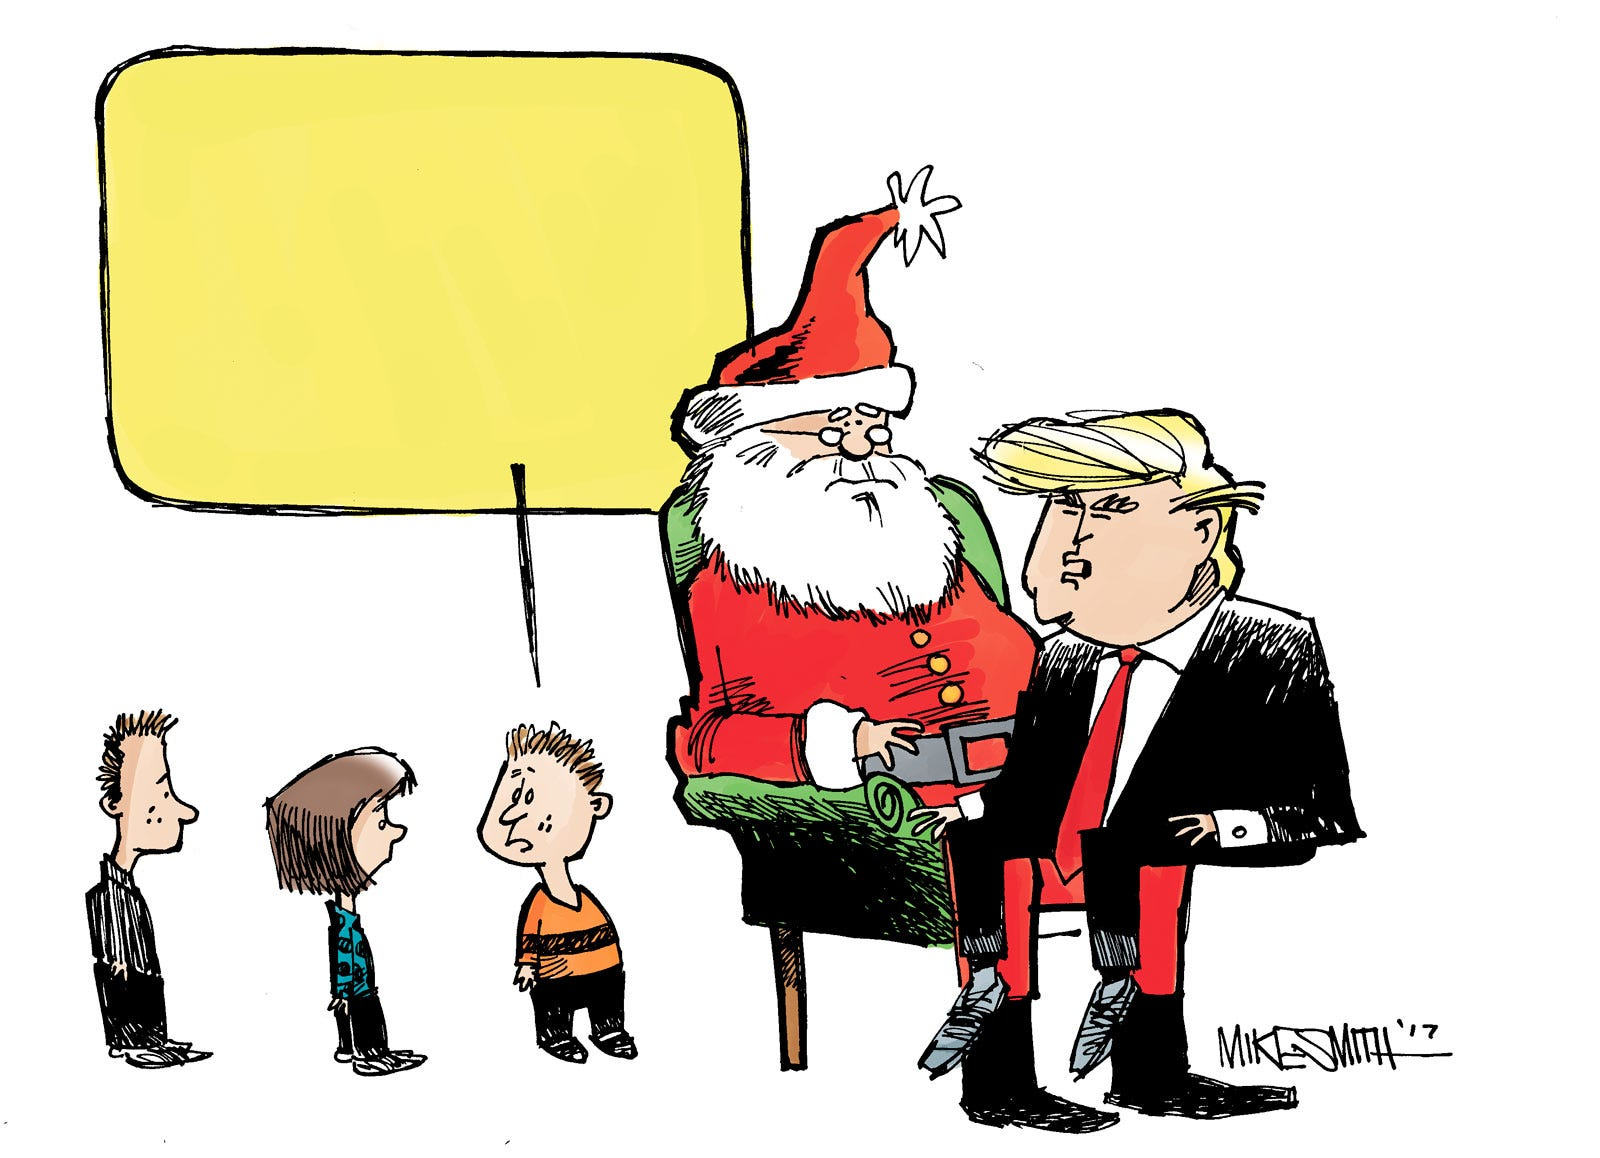 YouToon: It's Santa and Trump. Give us a caption!